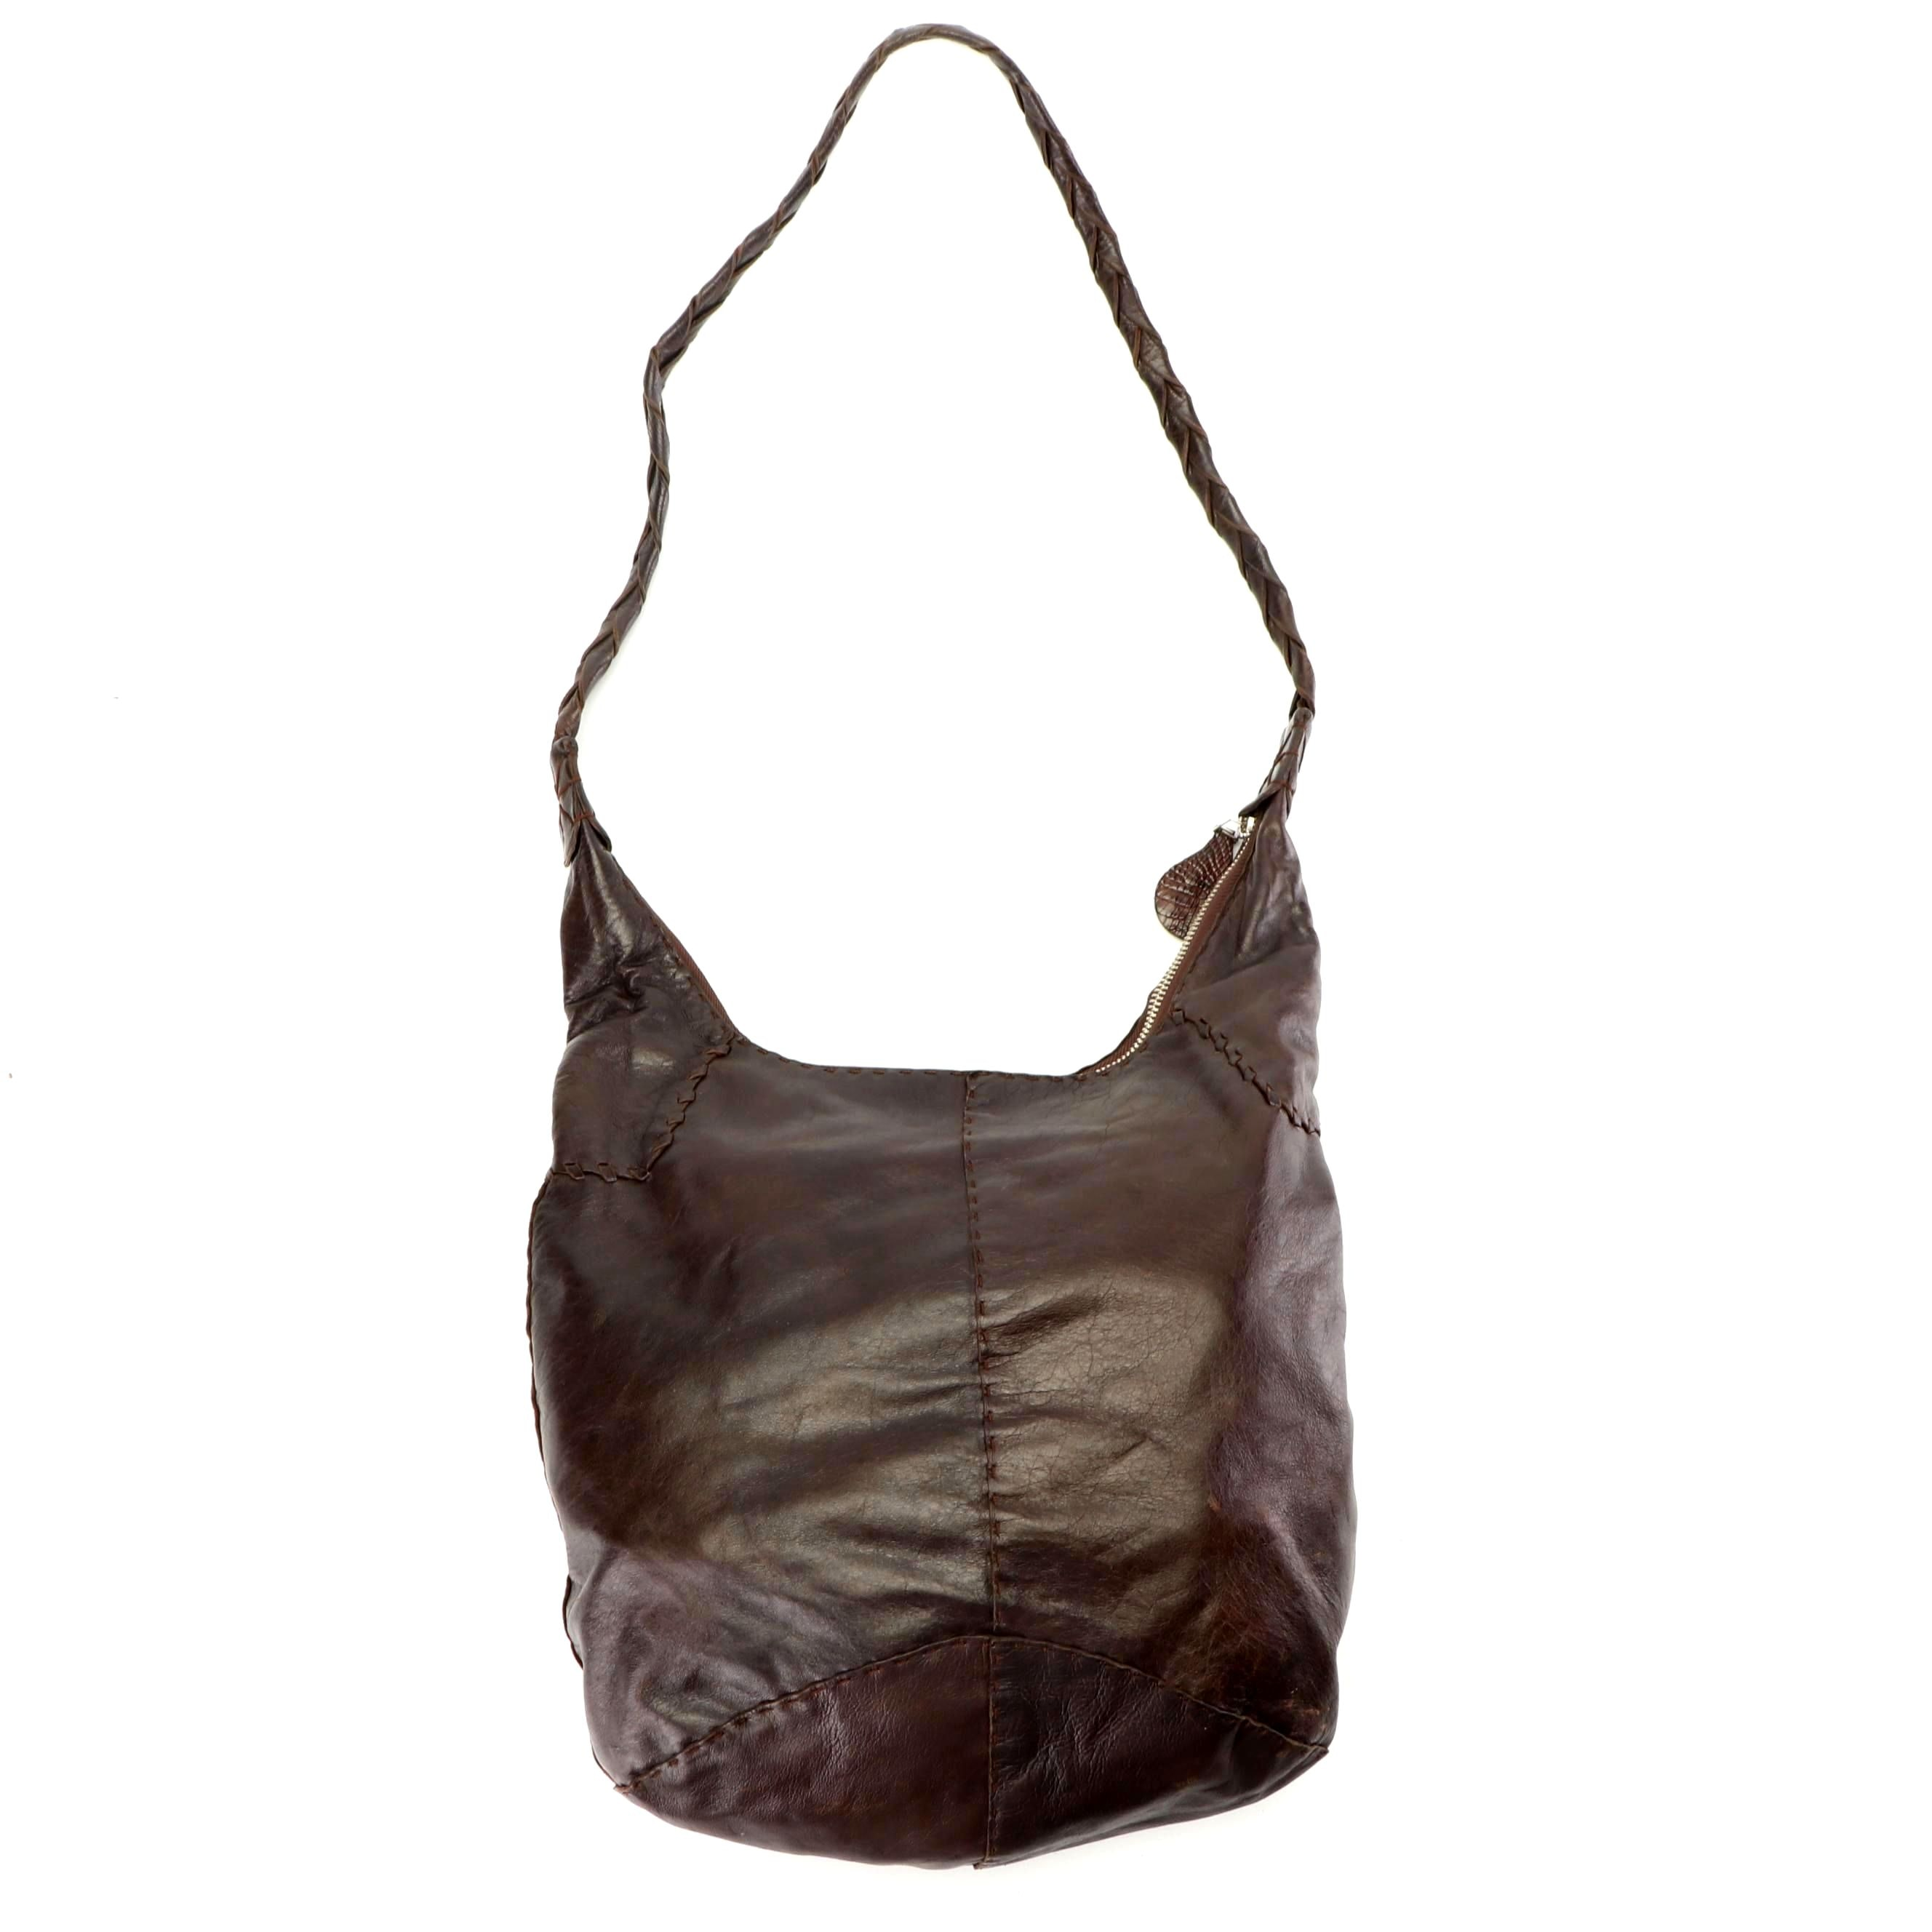 Parker Ochs Dark Brown Leather Hobo Bag with Woven Strap